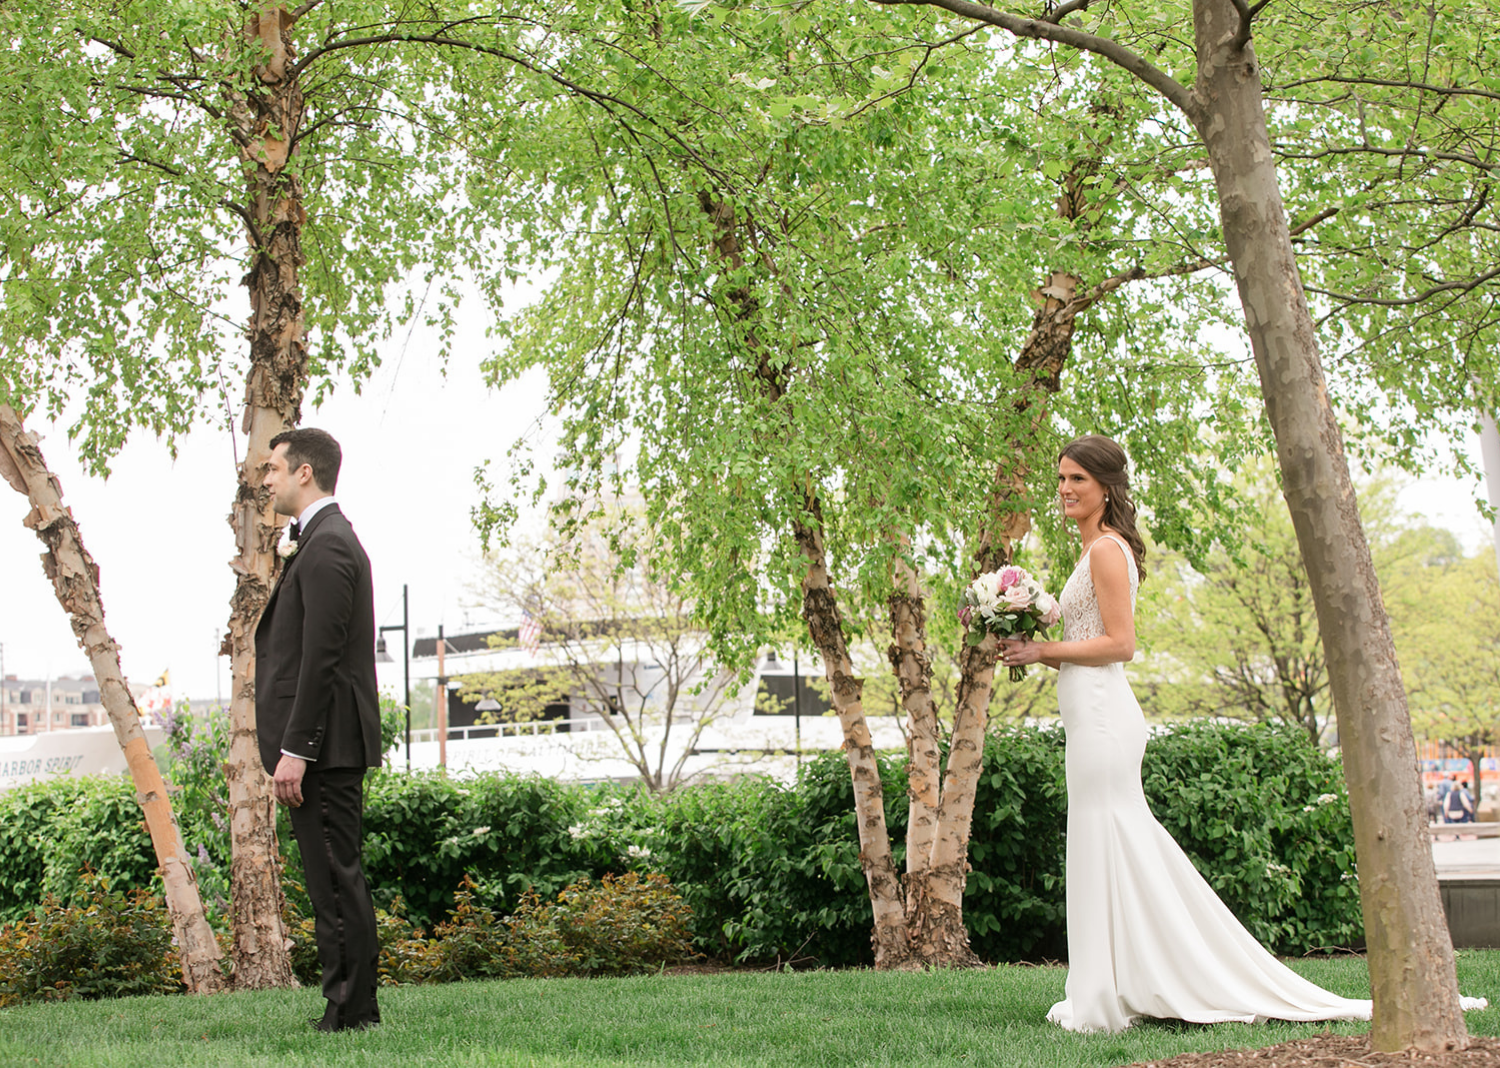 bride stands behind the groom as she approaches him for their first look